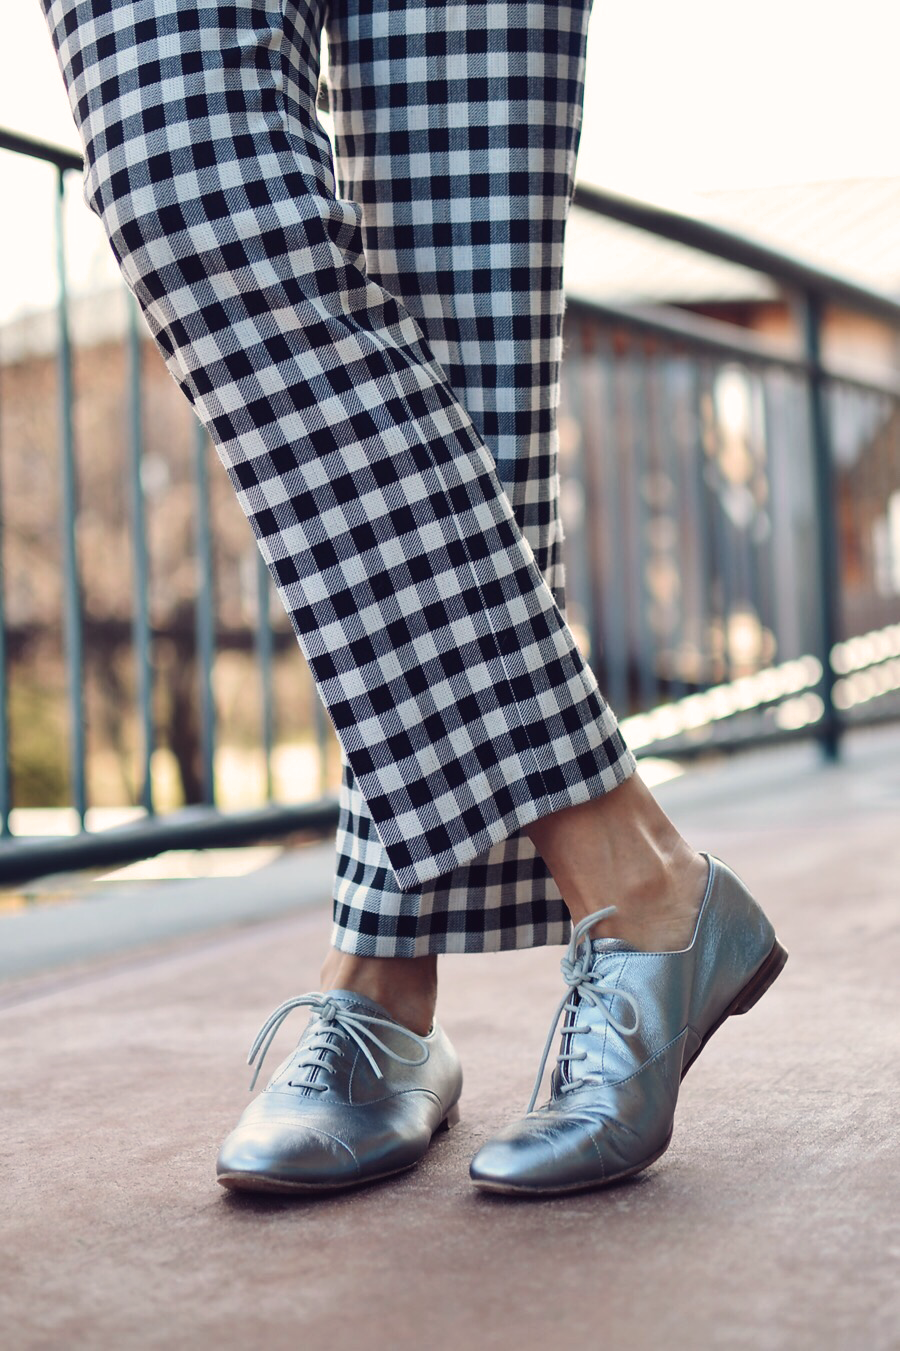 How to wear gingham pants